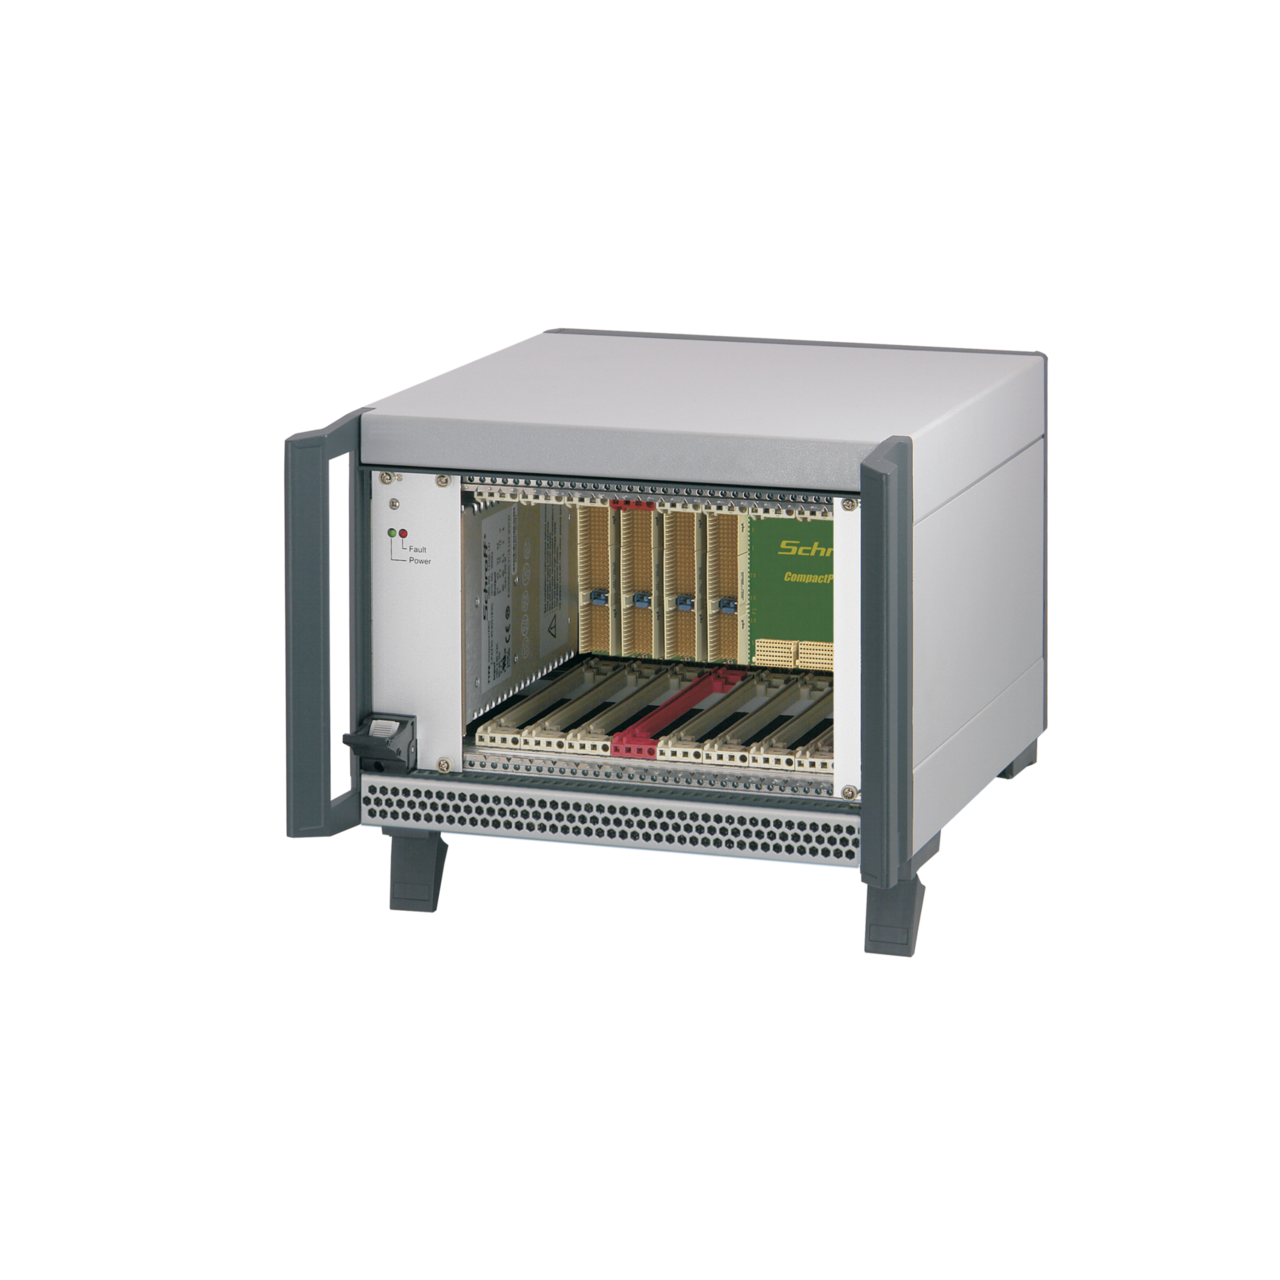 Image for CompactPCI PlusIO 4 U, 8 slot, 44 HP, with rear I/O, with 19